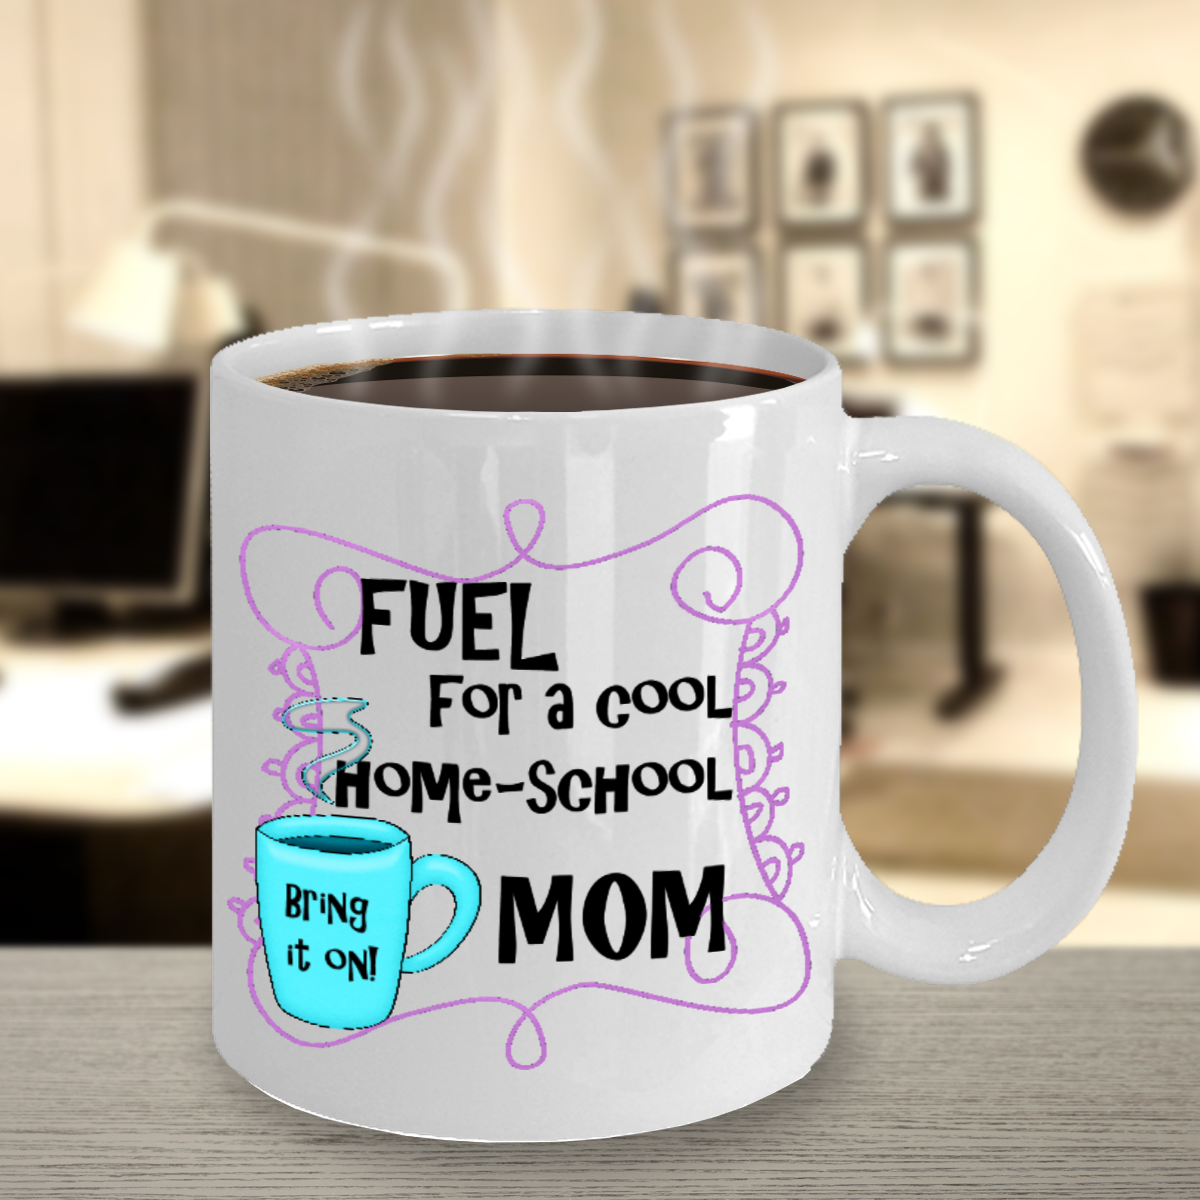 Shop my Amazon store - Novelty Designs for Families